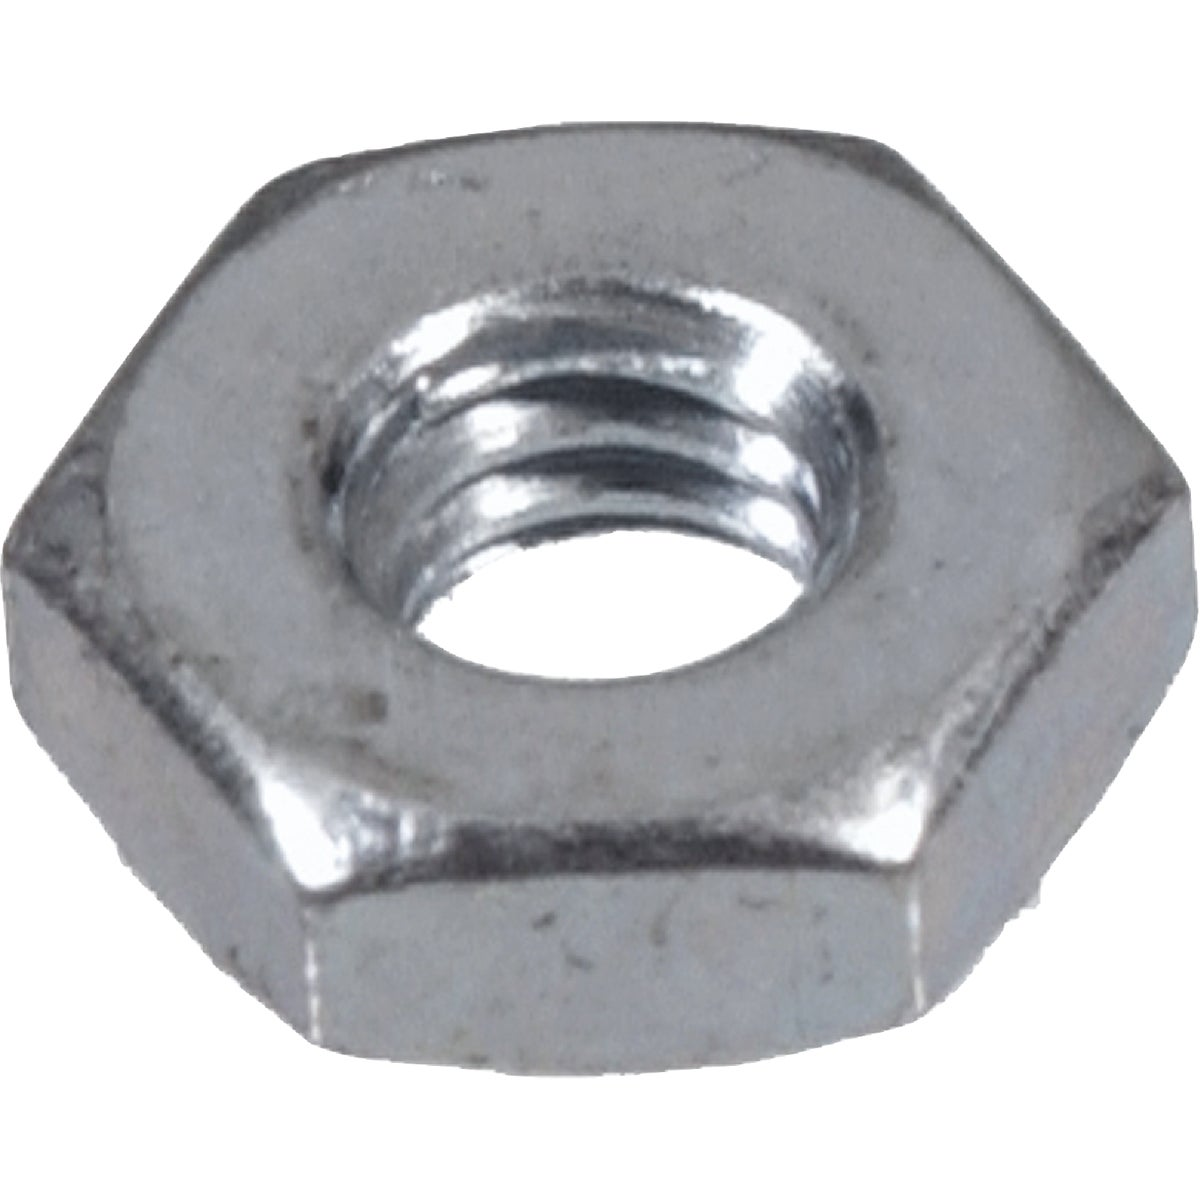 4-40 HEX MACH SCREW NUT